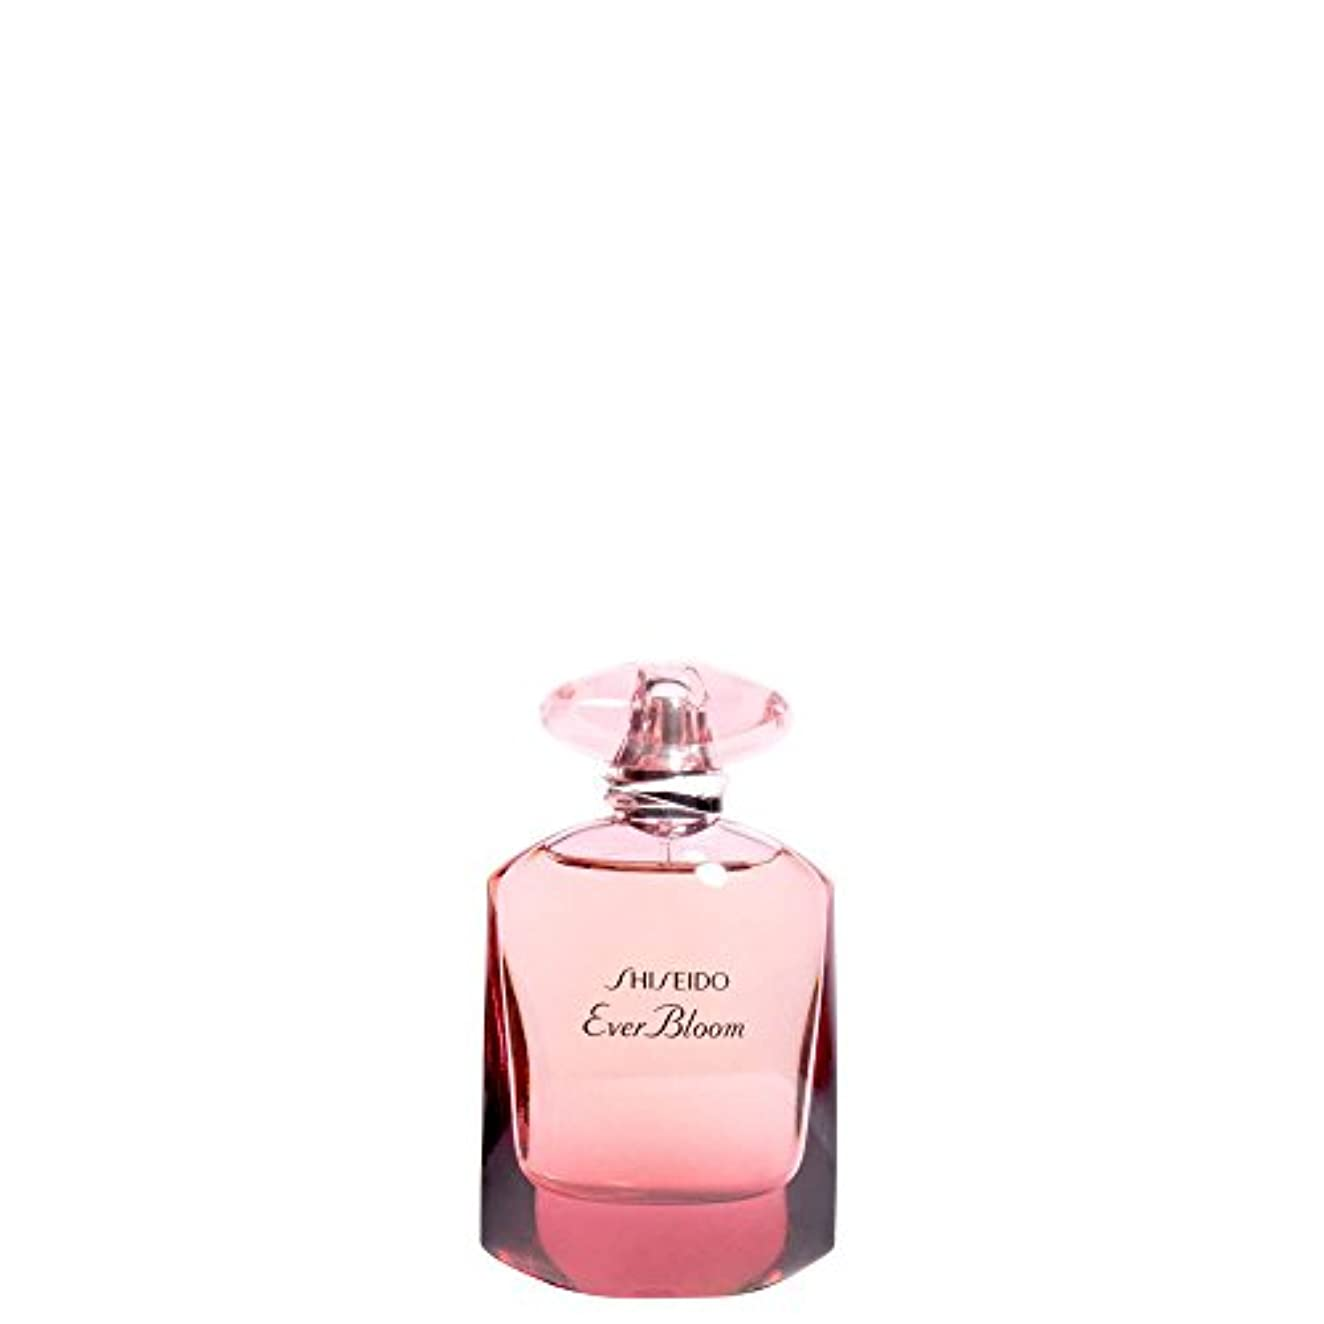 素晴らしい象取る資生堂 Ever Bloom Ginza Flower Eau De Parfum Spray 50ml/1.7oz並行輸入品